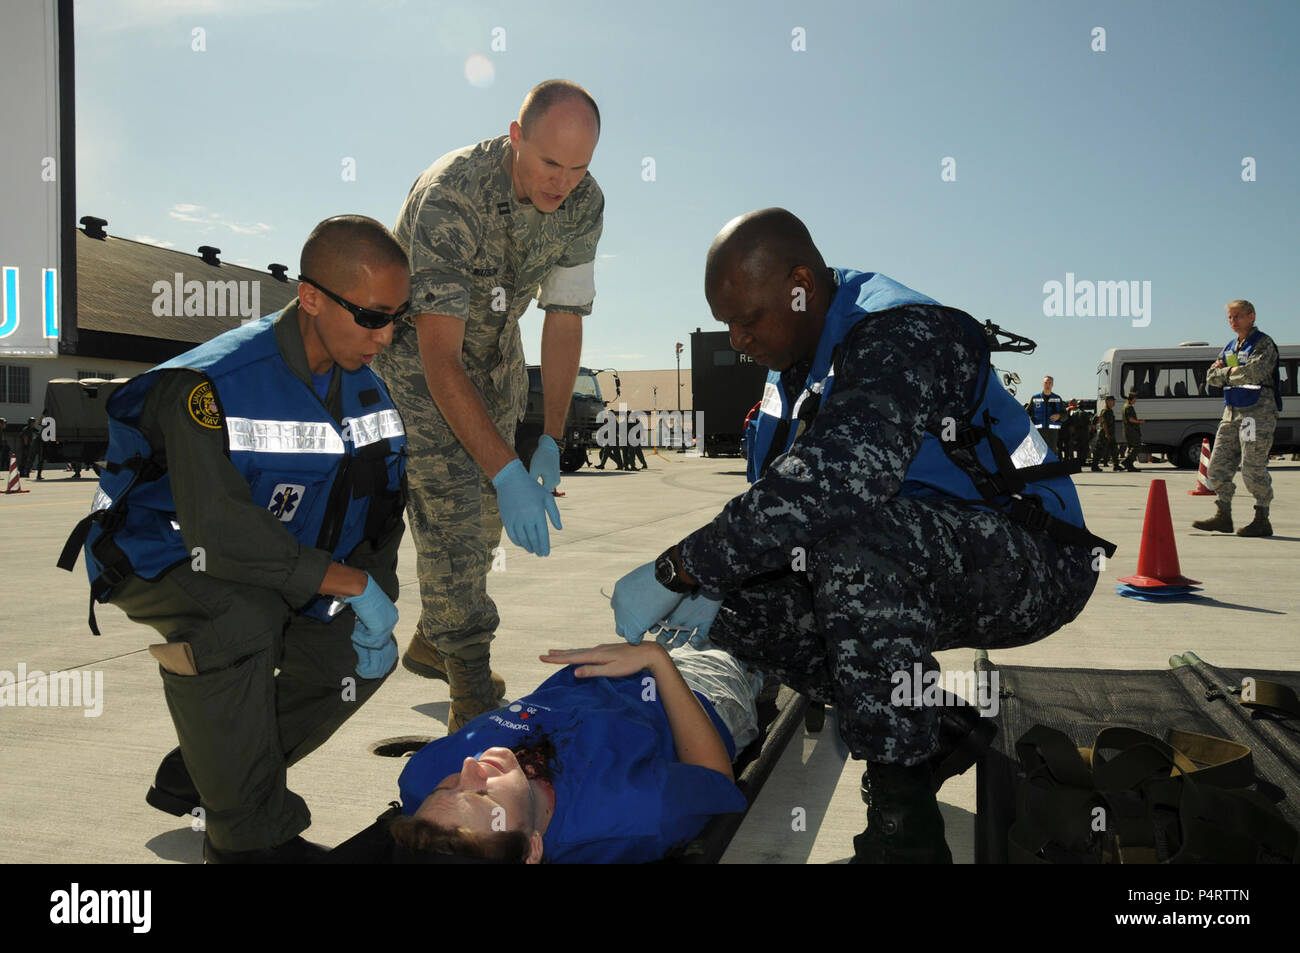 U.S. Navy Lt. Sung Choi, left, Air Force Capt. Robert Watson and Hospital Corpsman 2nd Class Chamunorwa Chimhau perform triage on a mock accident casualty during a major accident response exercise on Misawa Air Base in Japan Sept. 8, 2010. The joint, bilateral exercise with the U.S. Navy, U.S. Air Force and Japanese Air Self-Defense Force is designed to improve interoperability in the event of a major catastrophe. (DoD - Stock Image